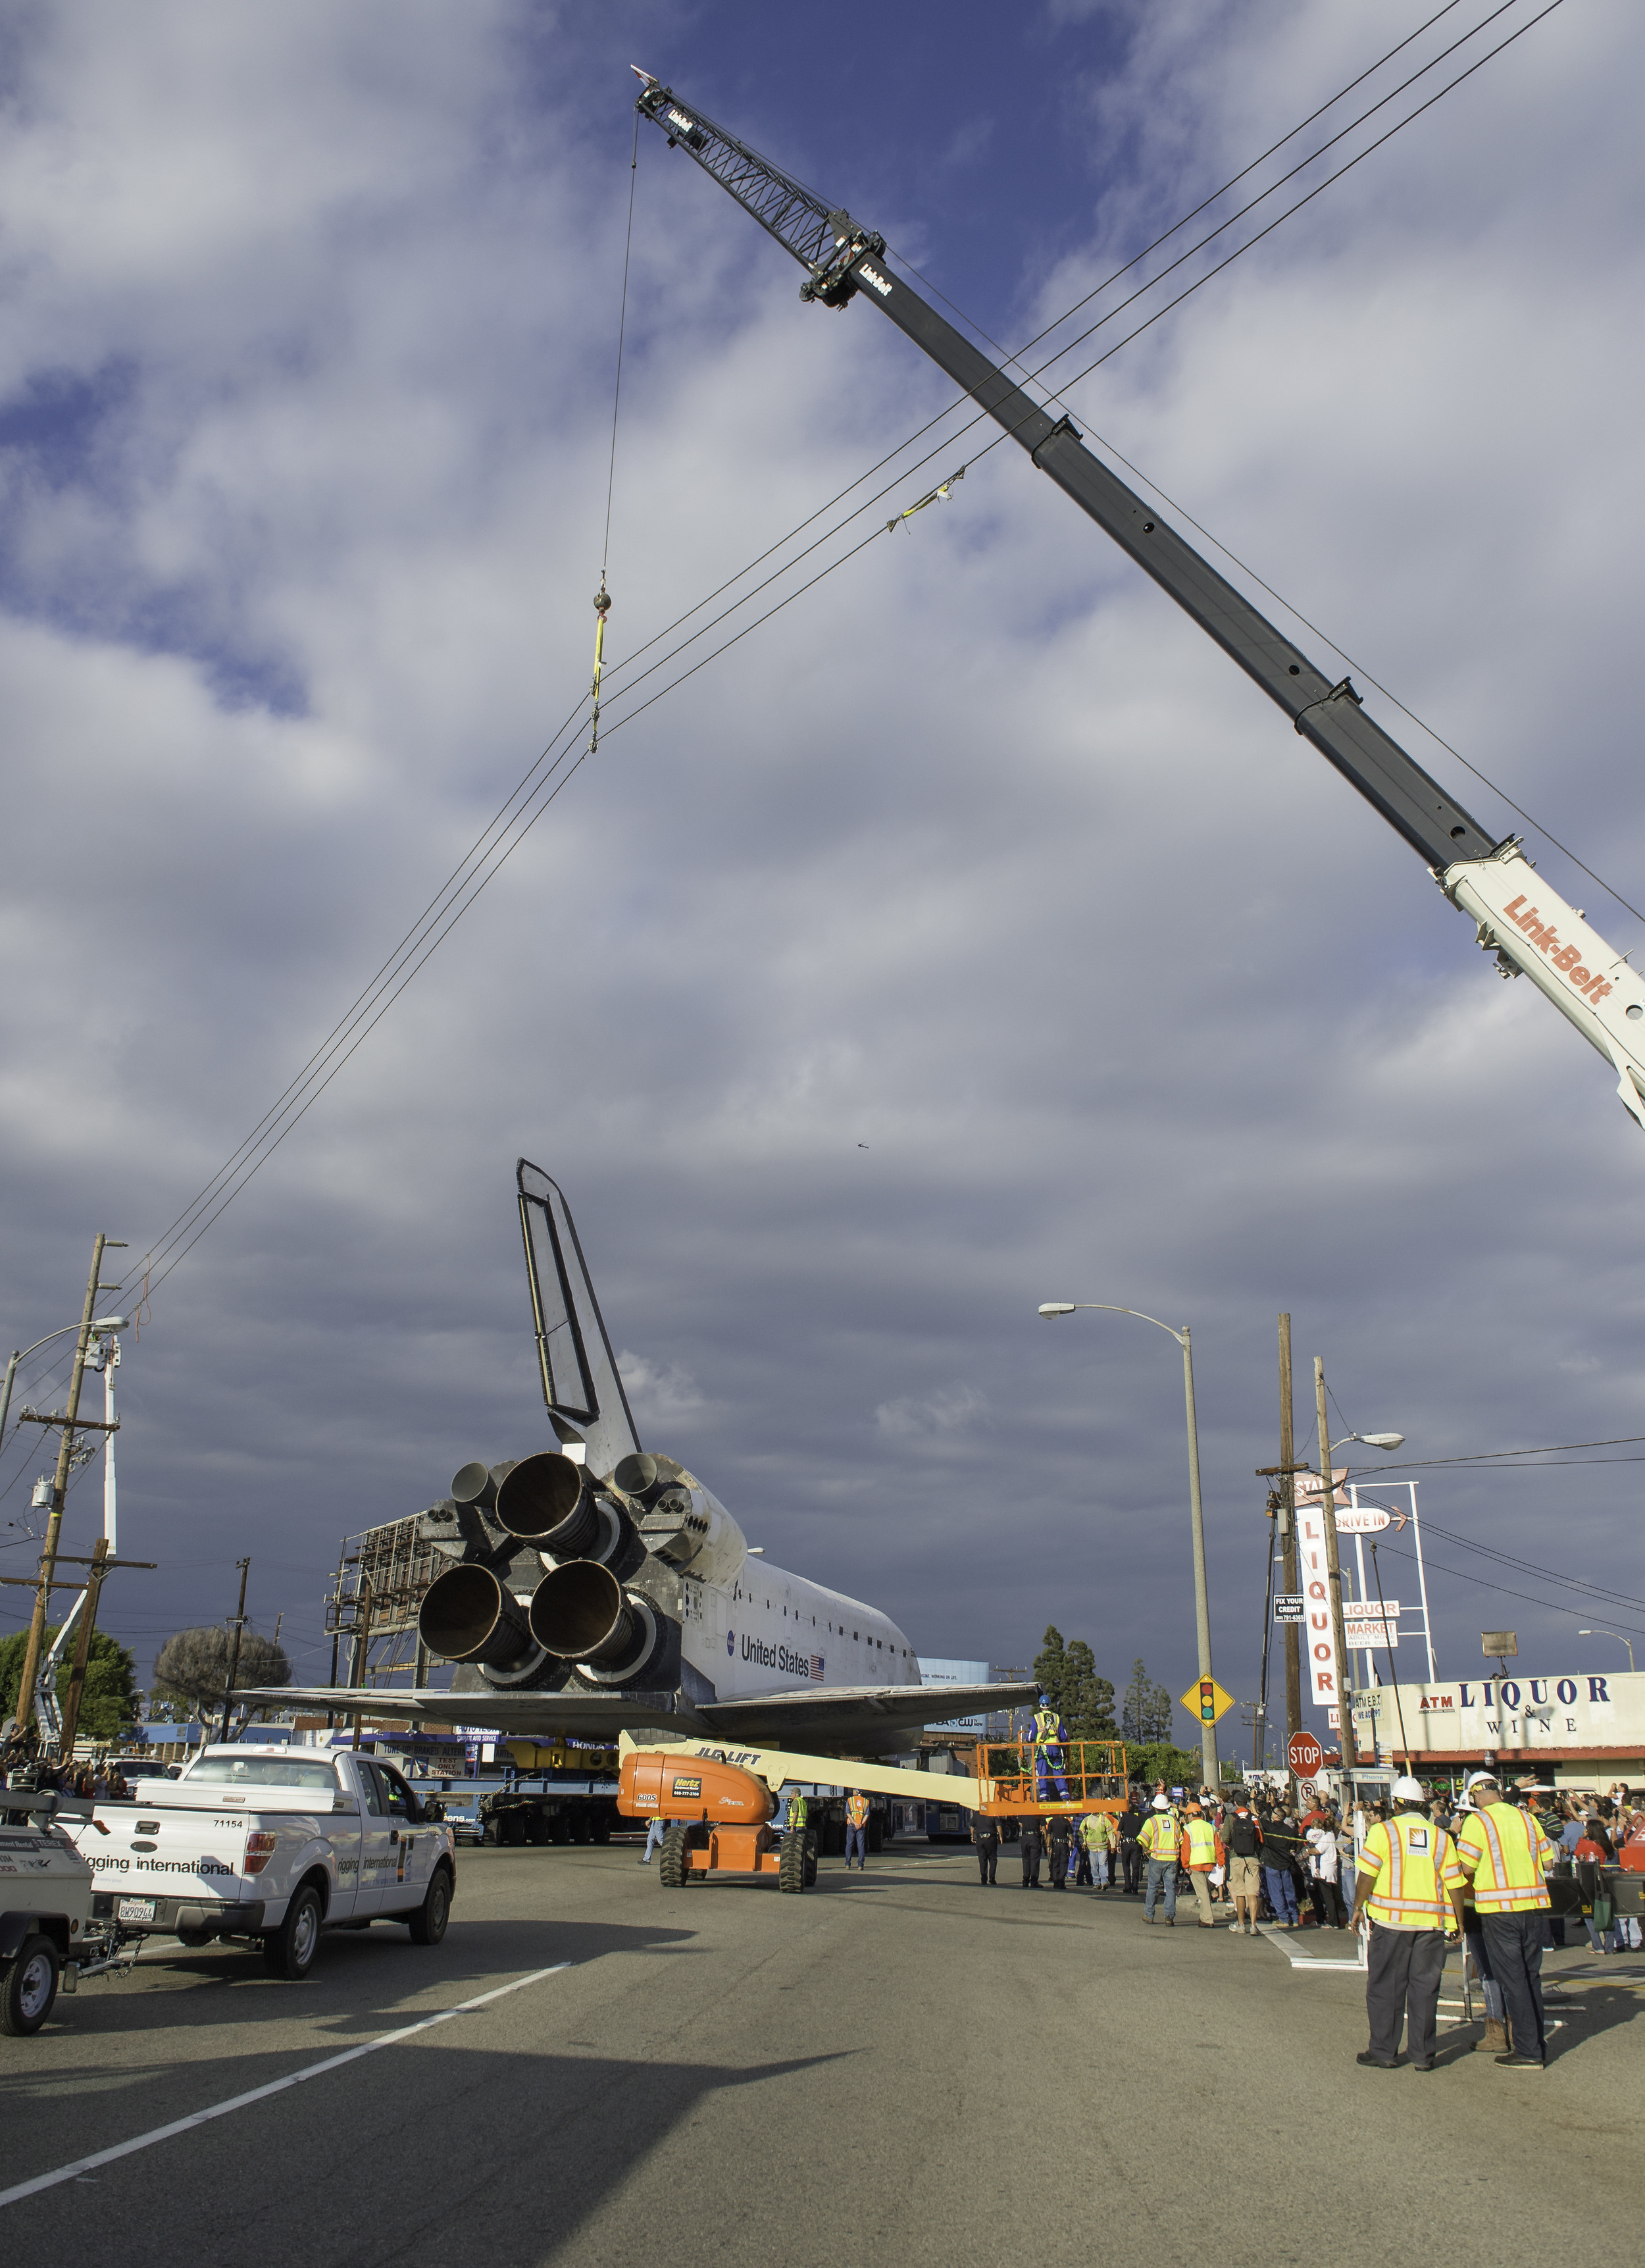 Power lines are hoisted upwards by a crane in order to allow the space shuttle Endeavour to traverse on its path to its new home at the California Science Center, Friday, Oct. 12, 2012 in Inglewood. Endeavour, built as a replacement for space shuttle Challenger, completed 25 missions, spent 299 days in orbit, and orbited Earth 4,671 times while traveling 122,883,151 miles. Beginning Oct. 30, the shuttle will be on display in the CSC's Samuel Oschin Space Shuttle Endeavour Display Pavilion, embarking on its new mission to commemorate past achievements in space and educate and inspire future generations of explorers. (NASA/Carla Cioffi)